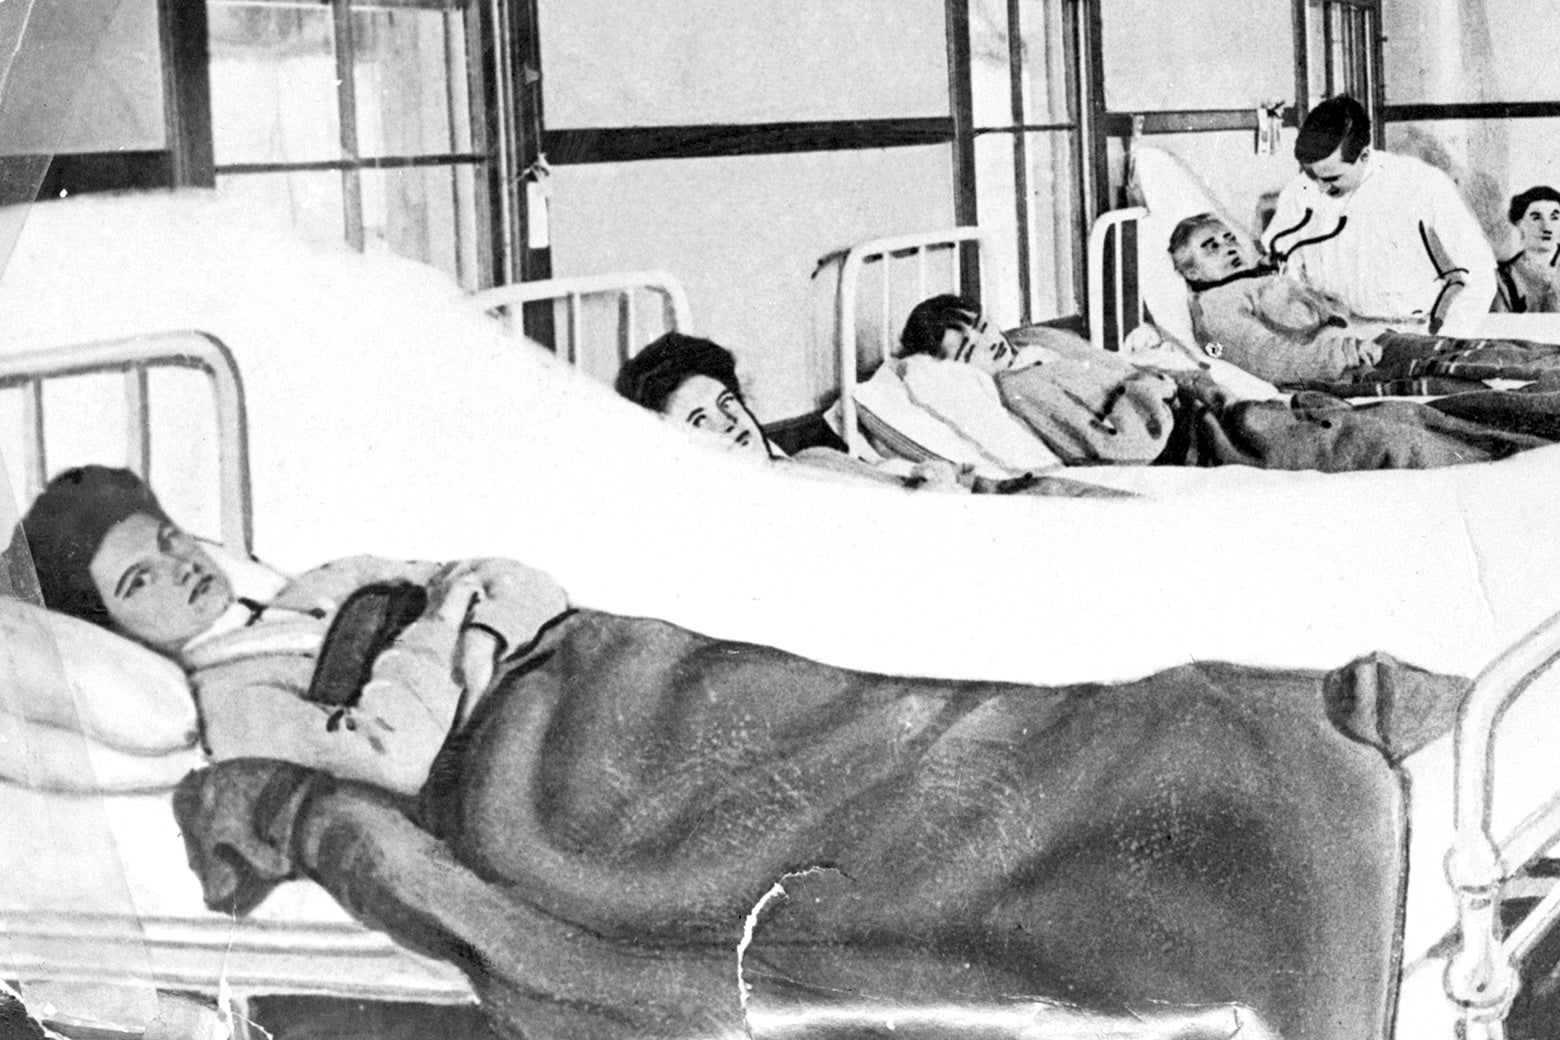 Mary Mallon and other patients in hospital beds.